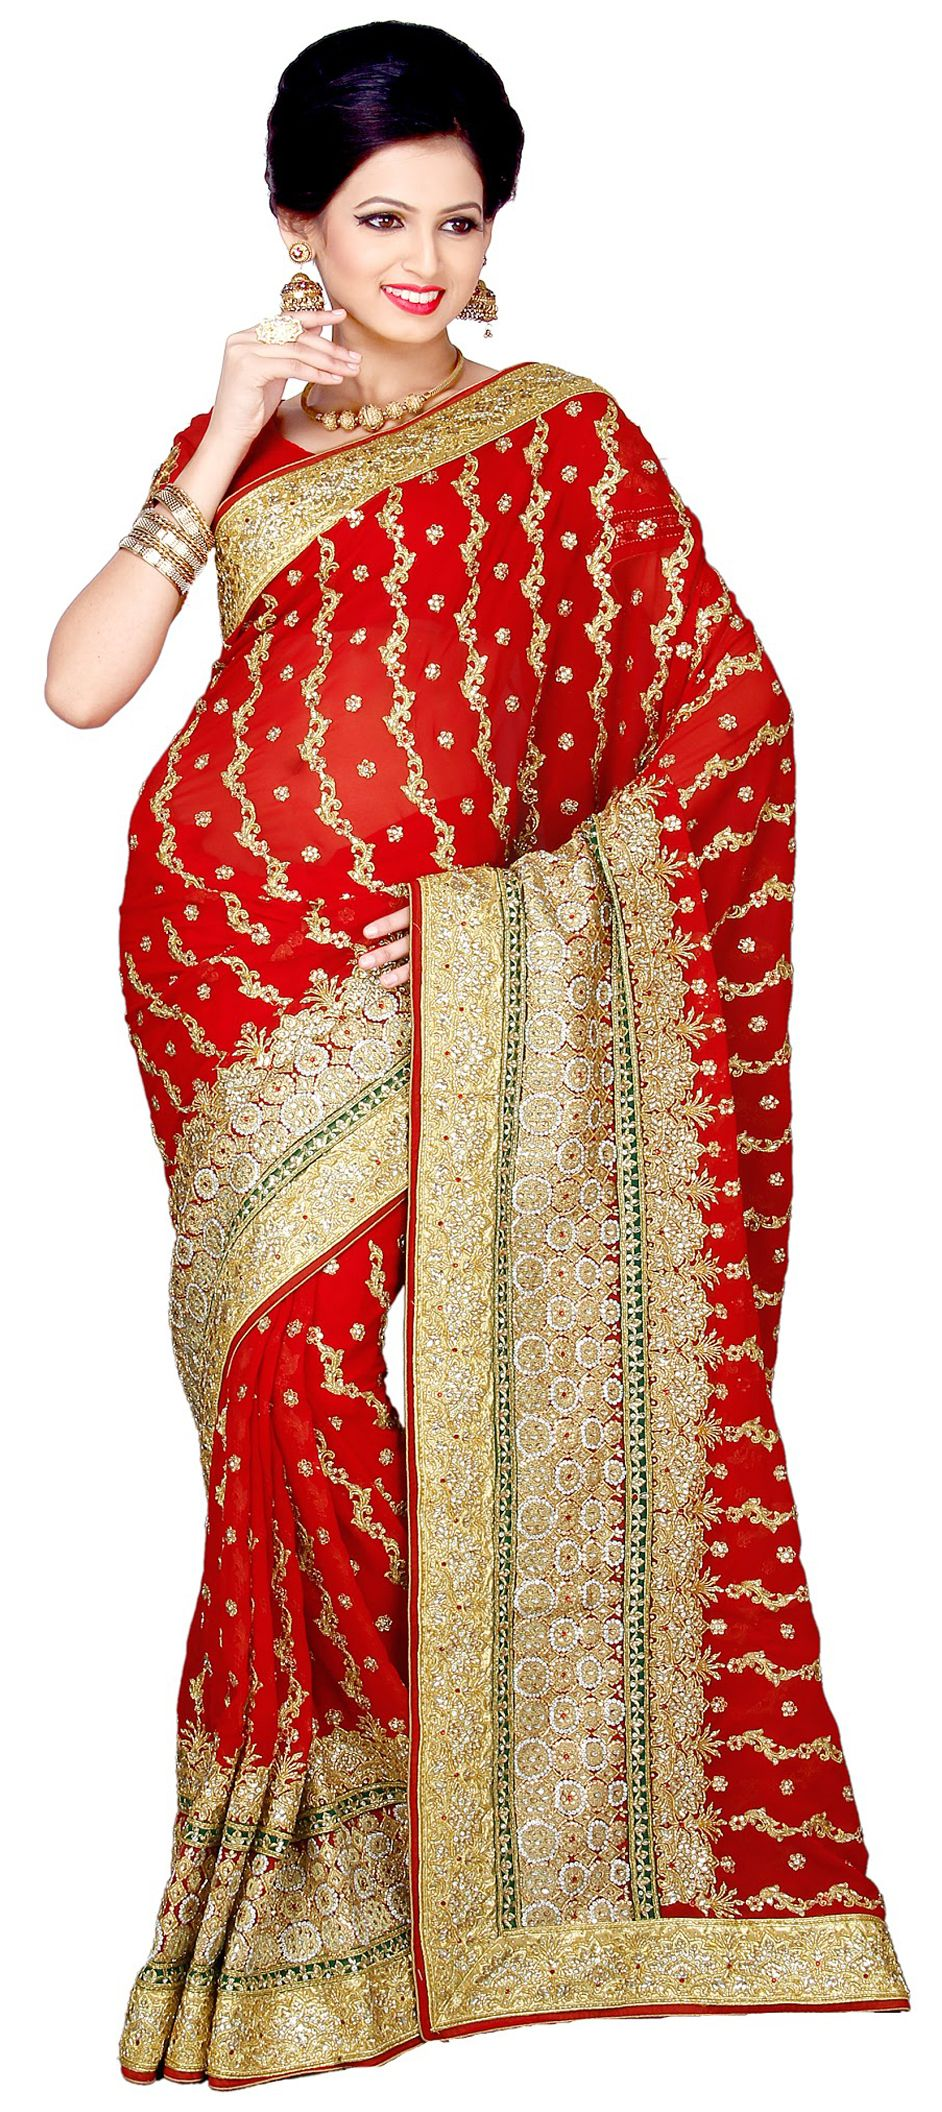 155949: Red and Maroon color family Saree with matching unstitched ...